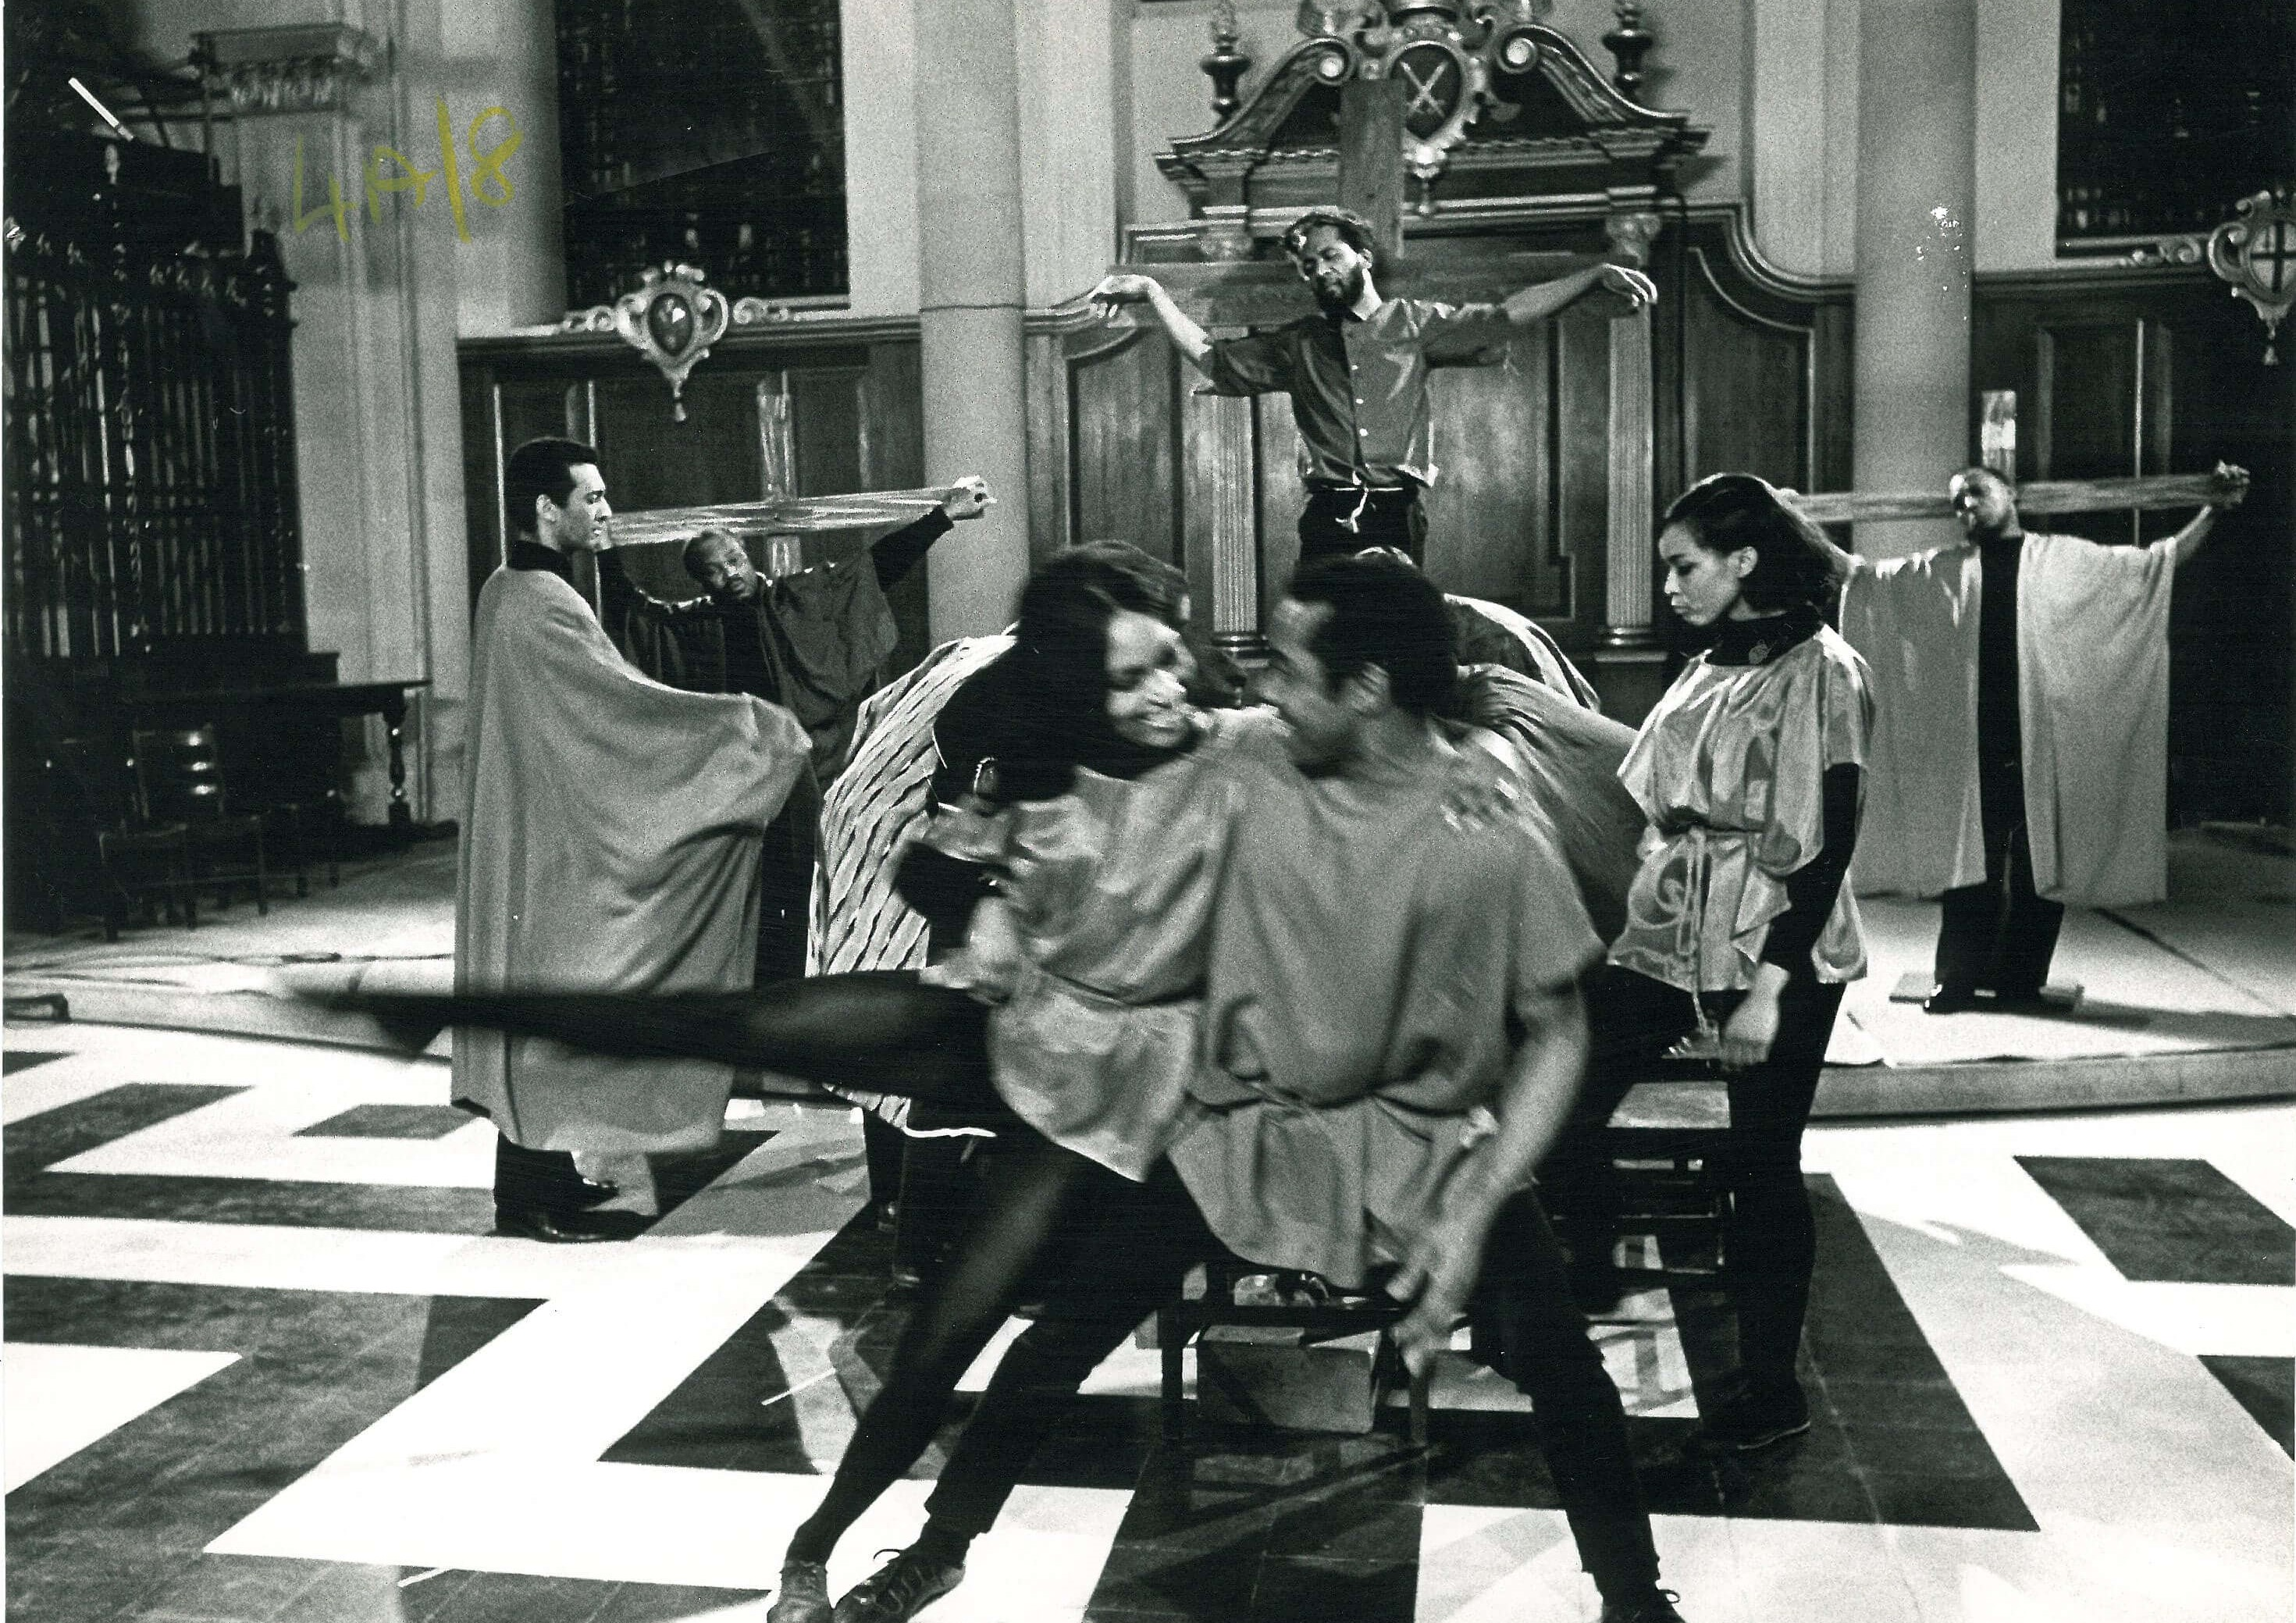 Photo (b/w) showing dancers in foreground, with George Browne on the Cross behind, flanked by two further crosses.